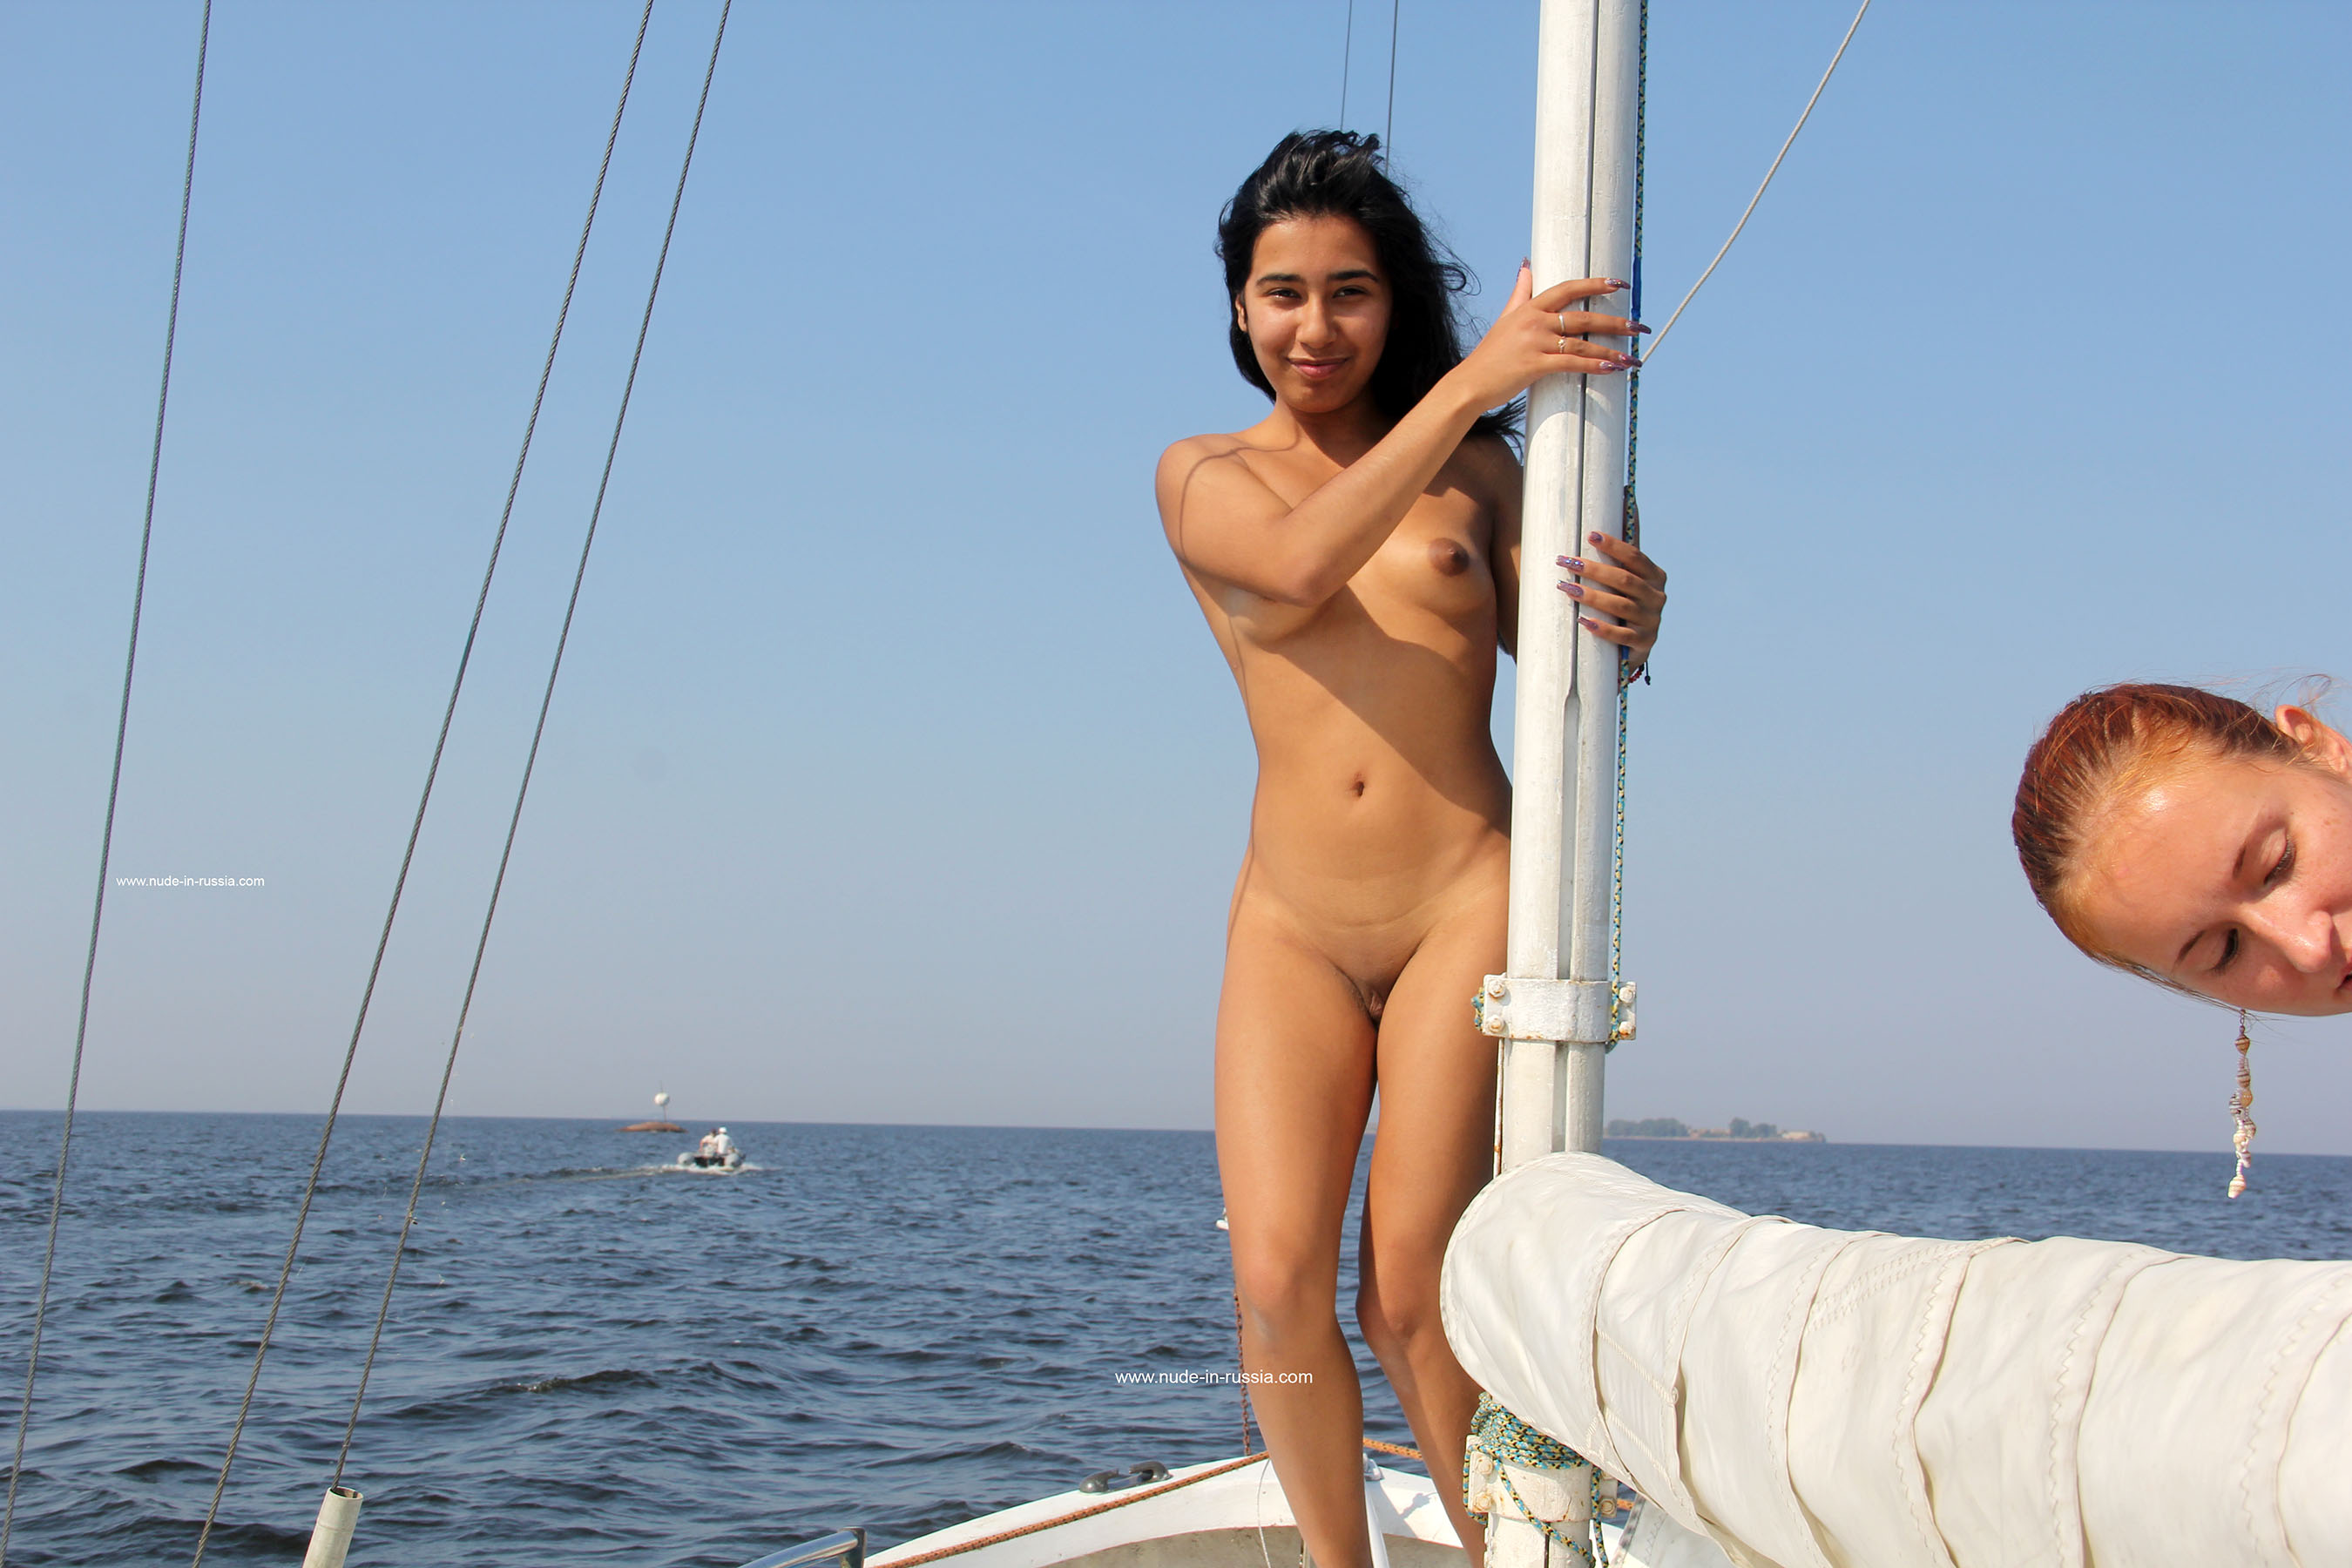 Nudist rusian you tube remarkable, very